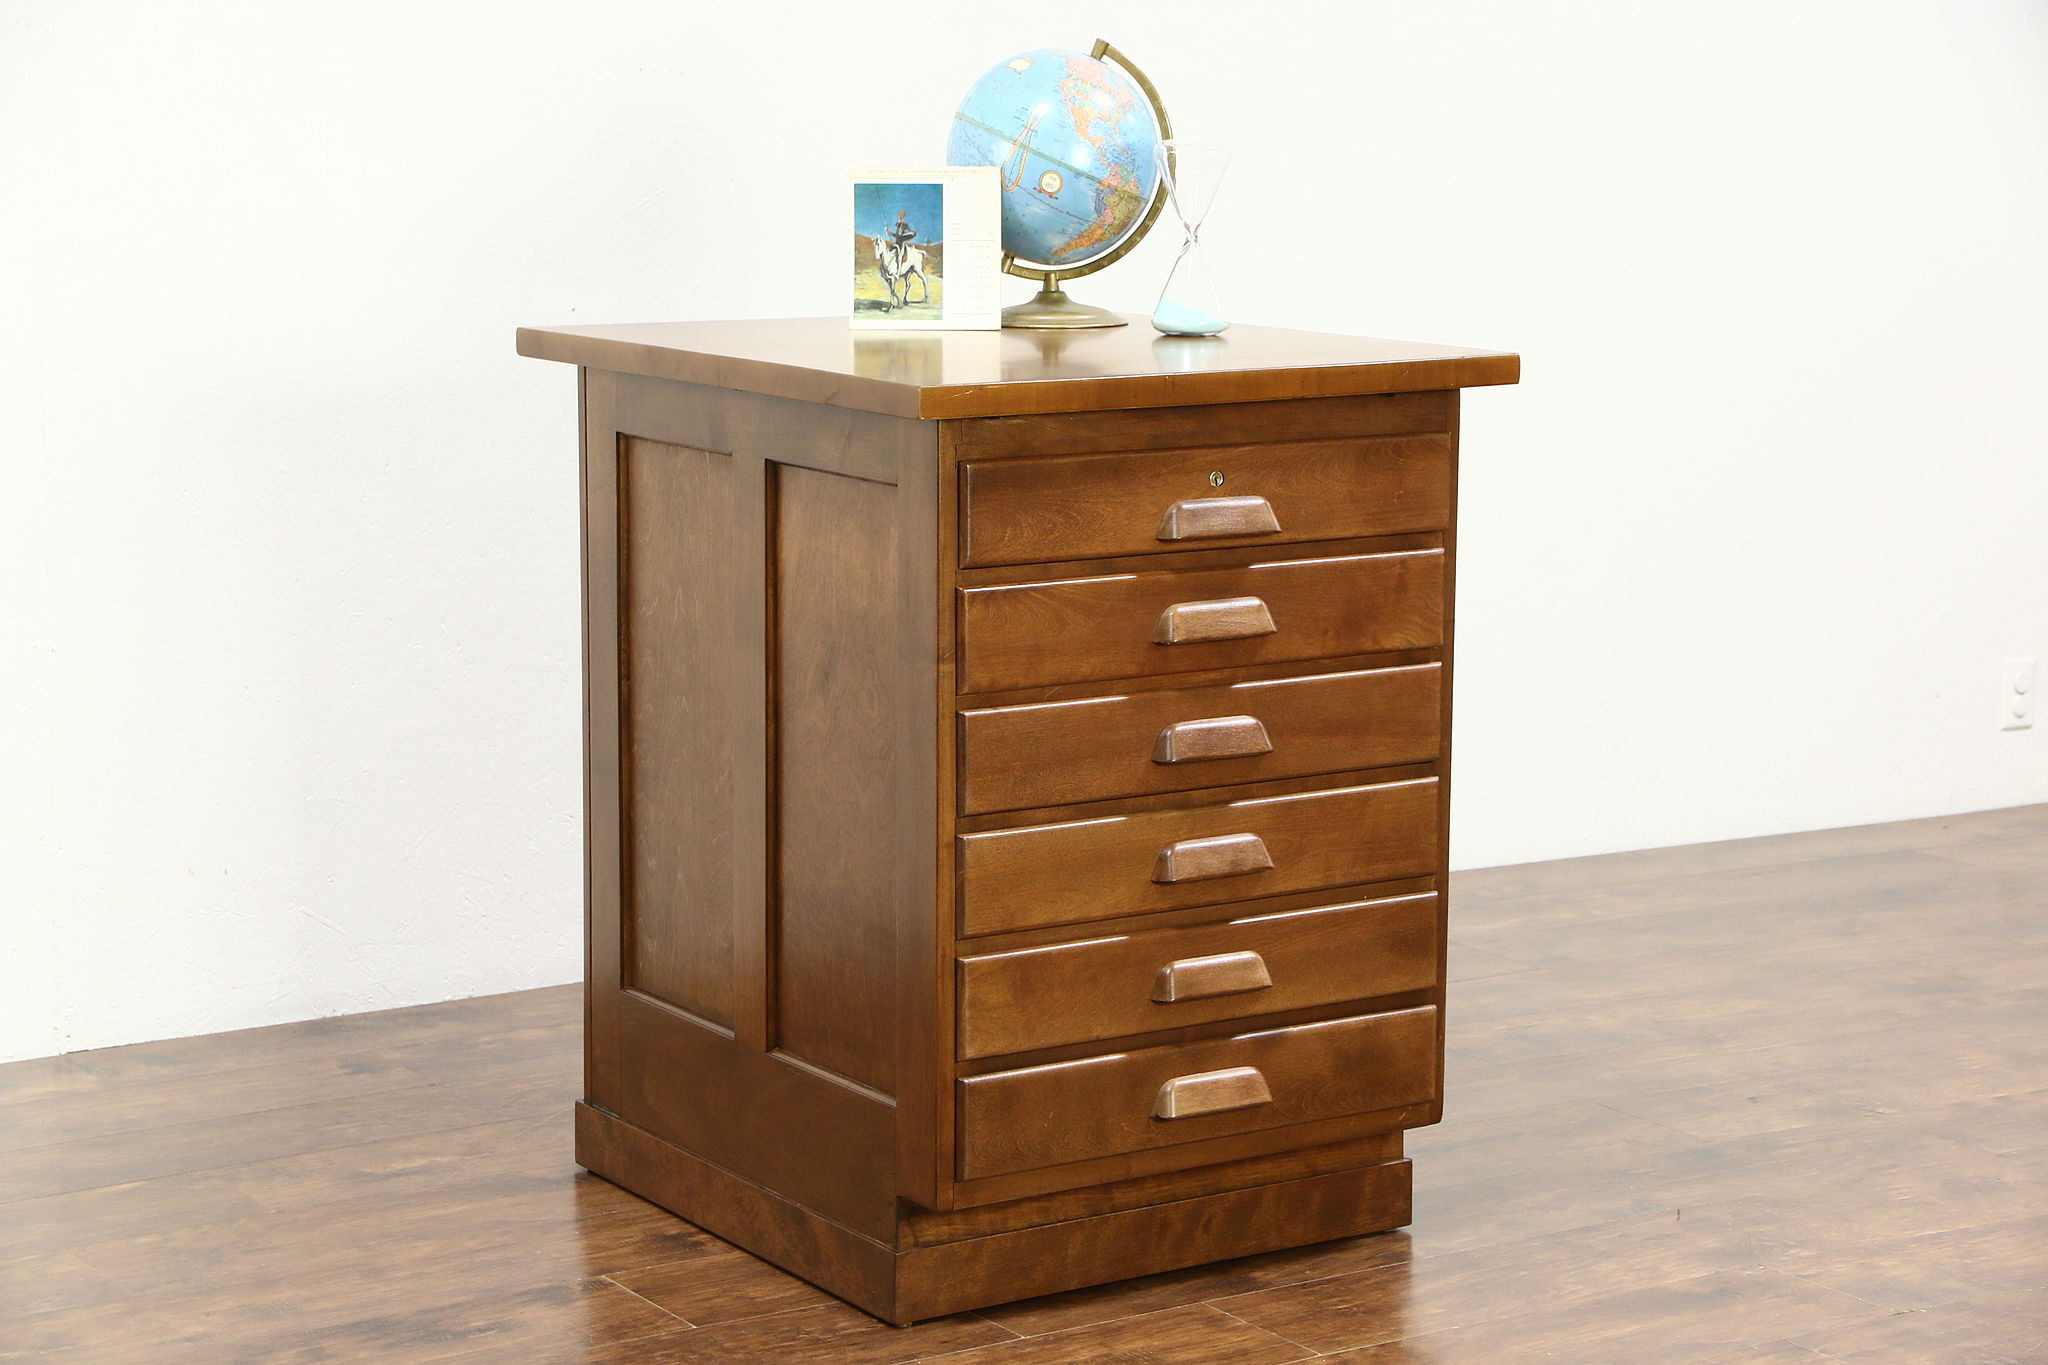 Maple 1930 Vintage Kitchen Island or Counter, 6 Drawers